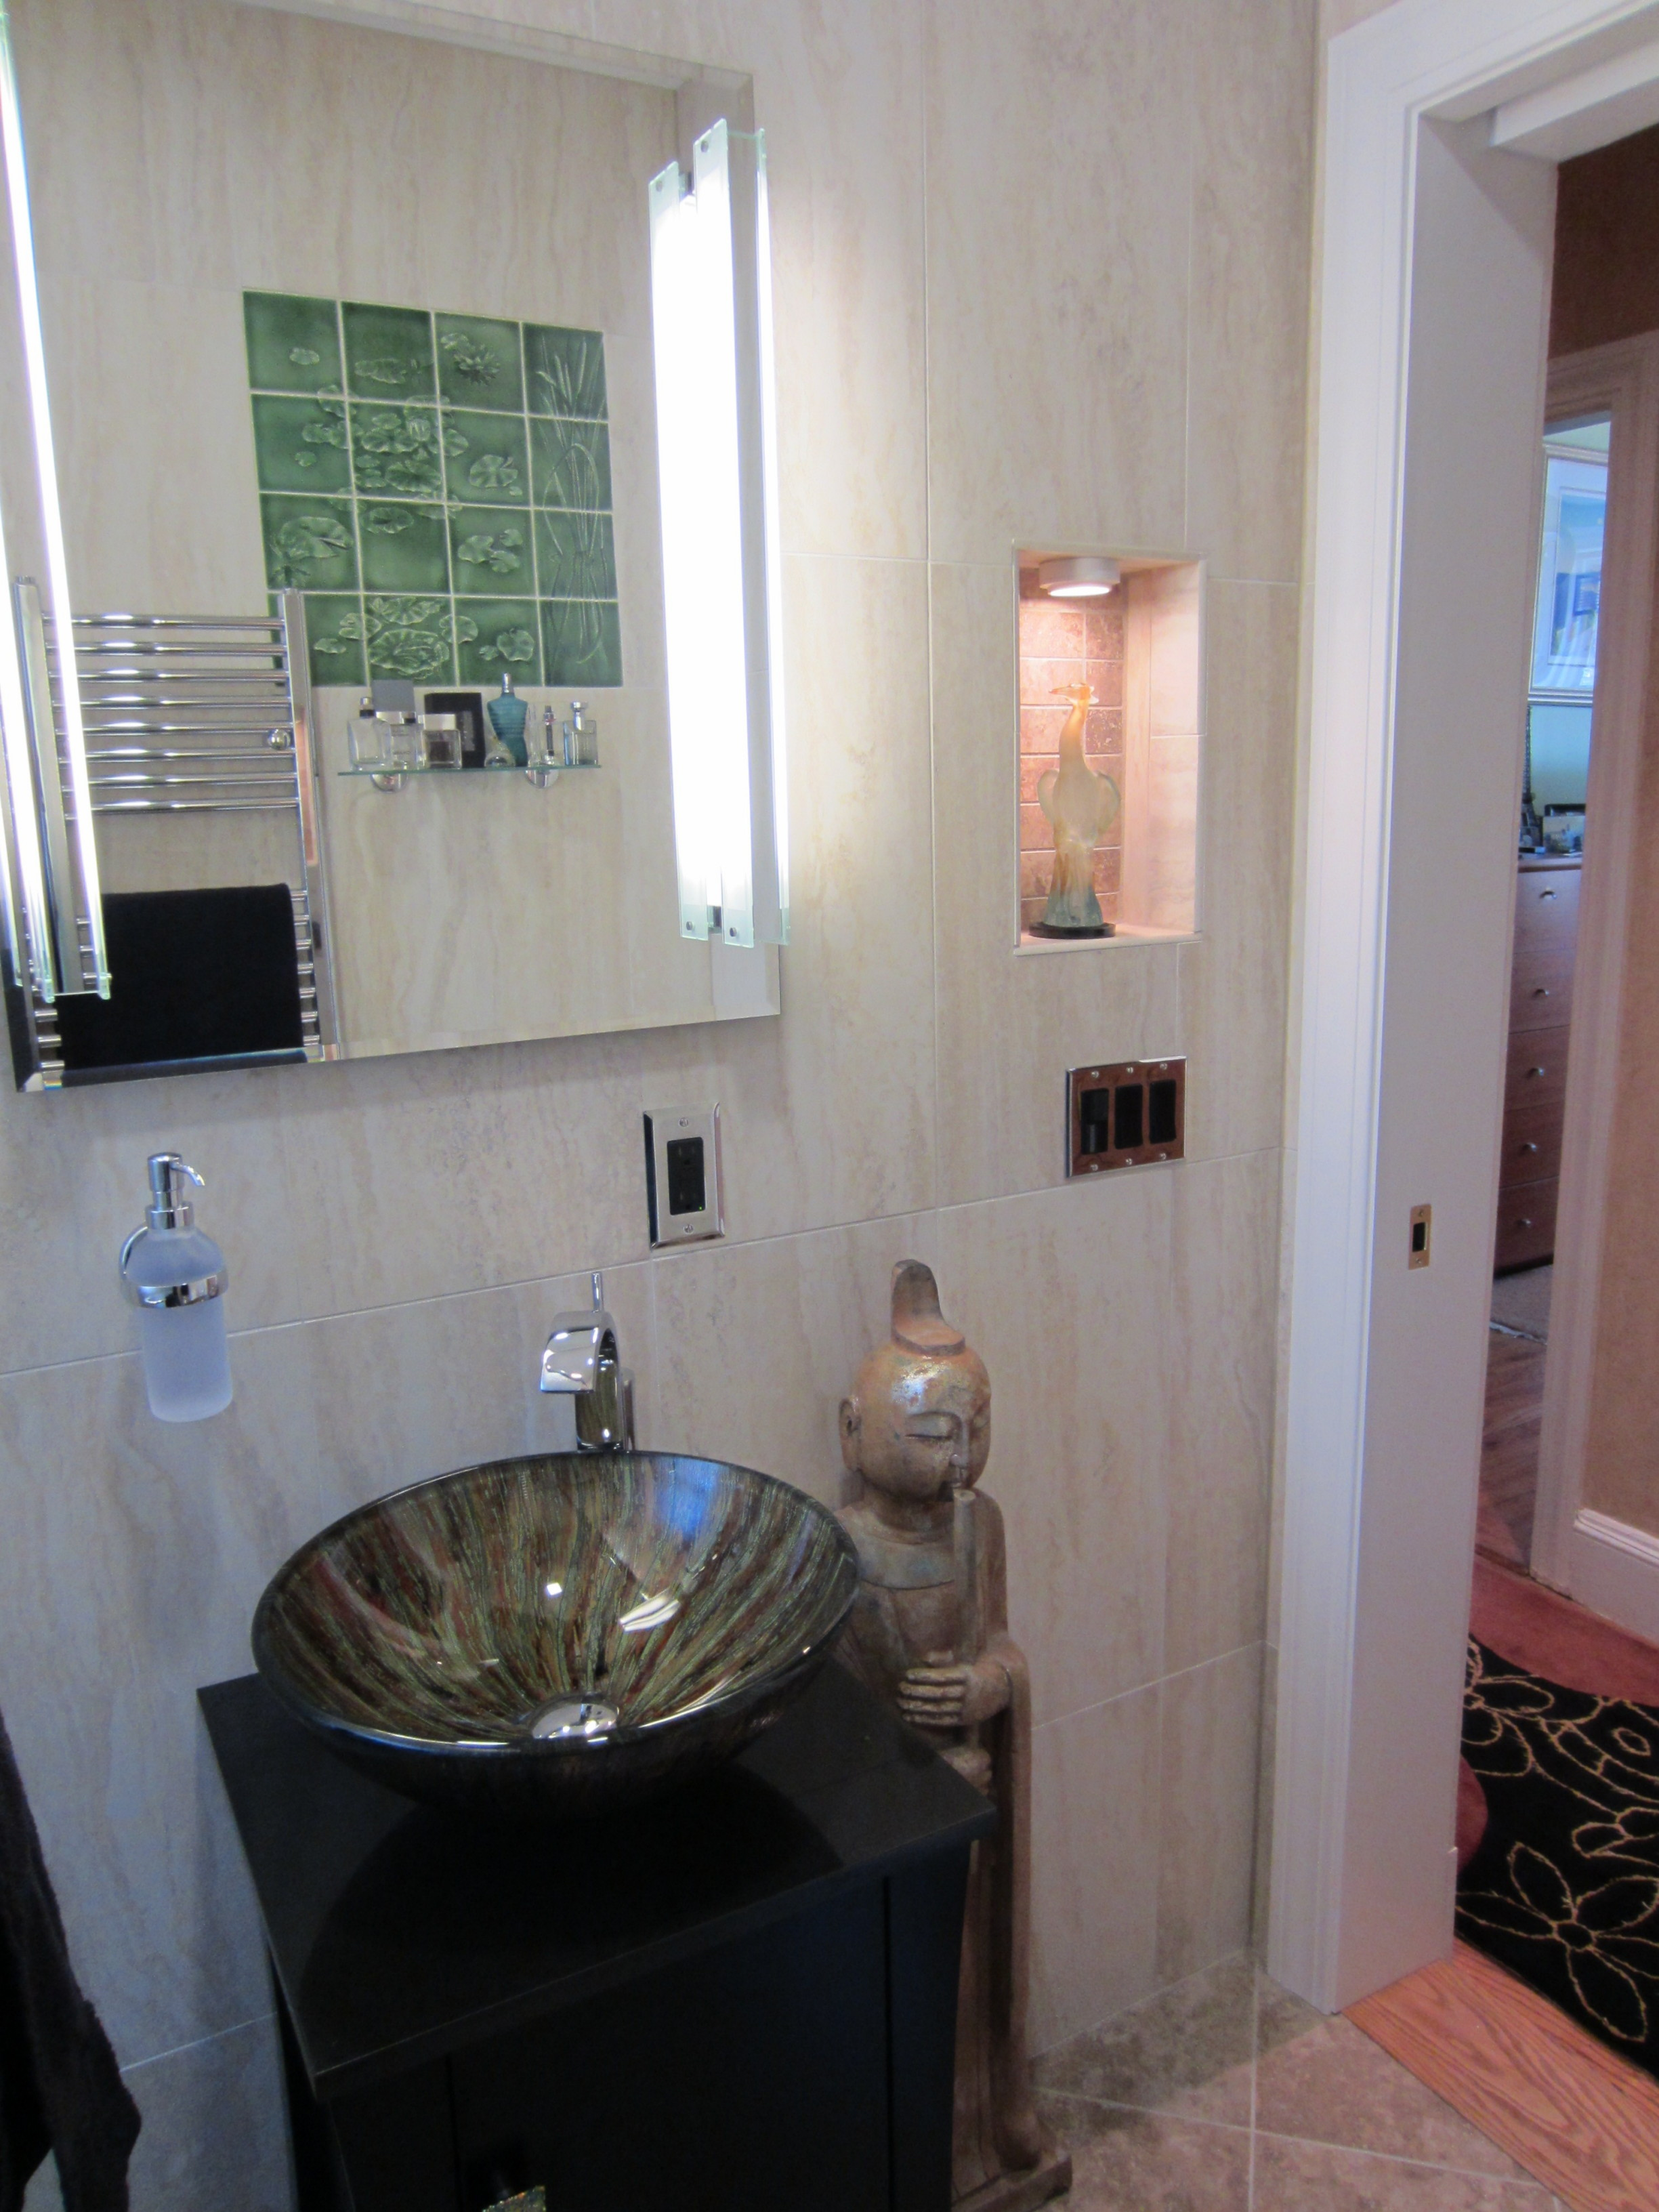 Bathroom Remodeling Nashua Nh bathroom remodeling | boston, andover, north andover, lexington